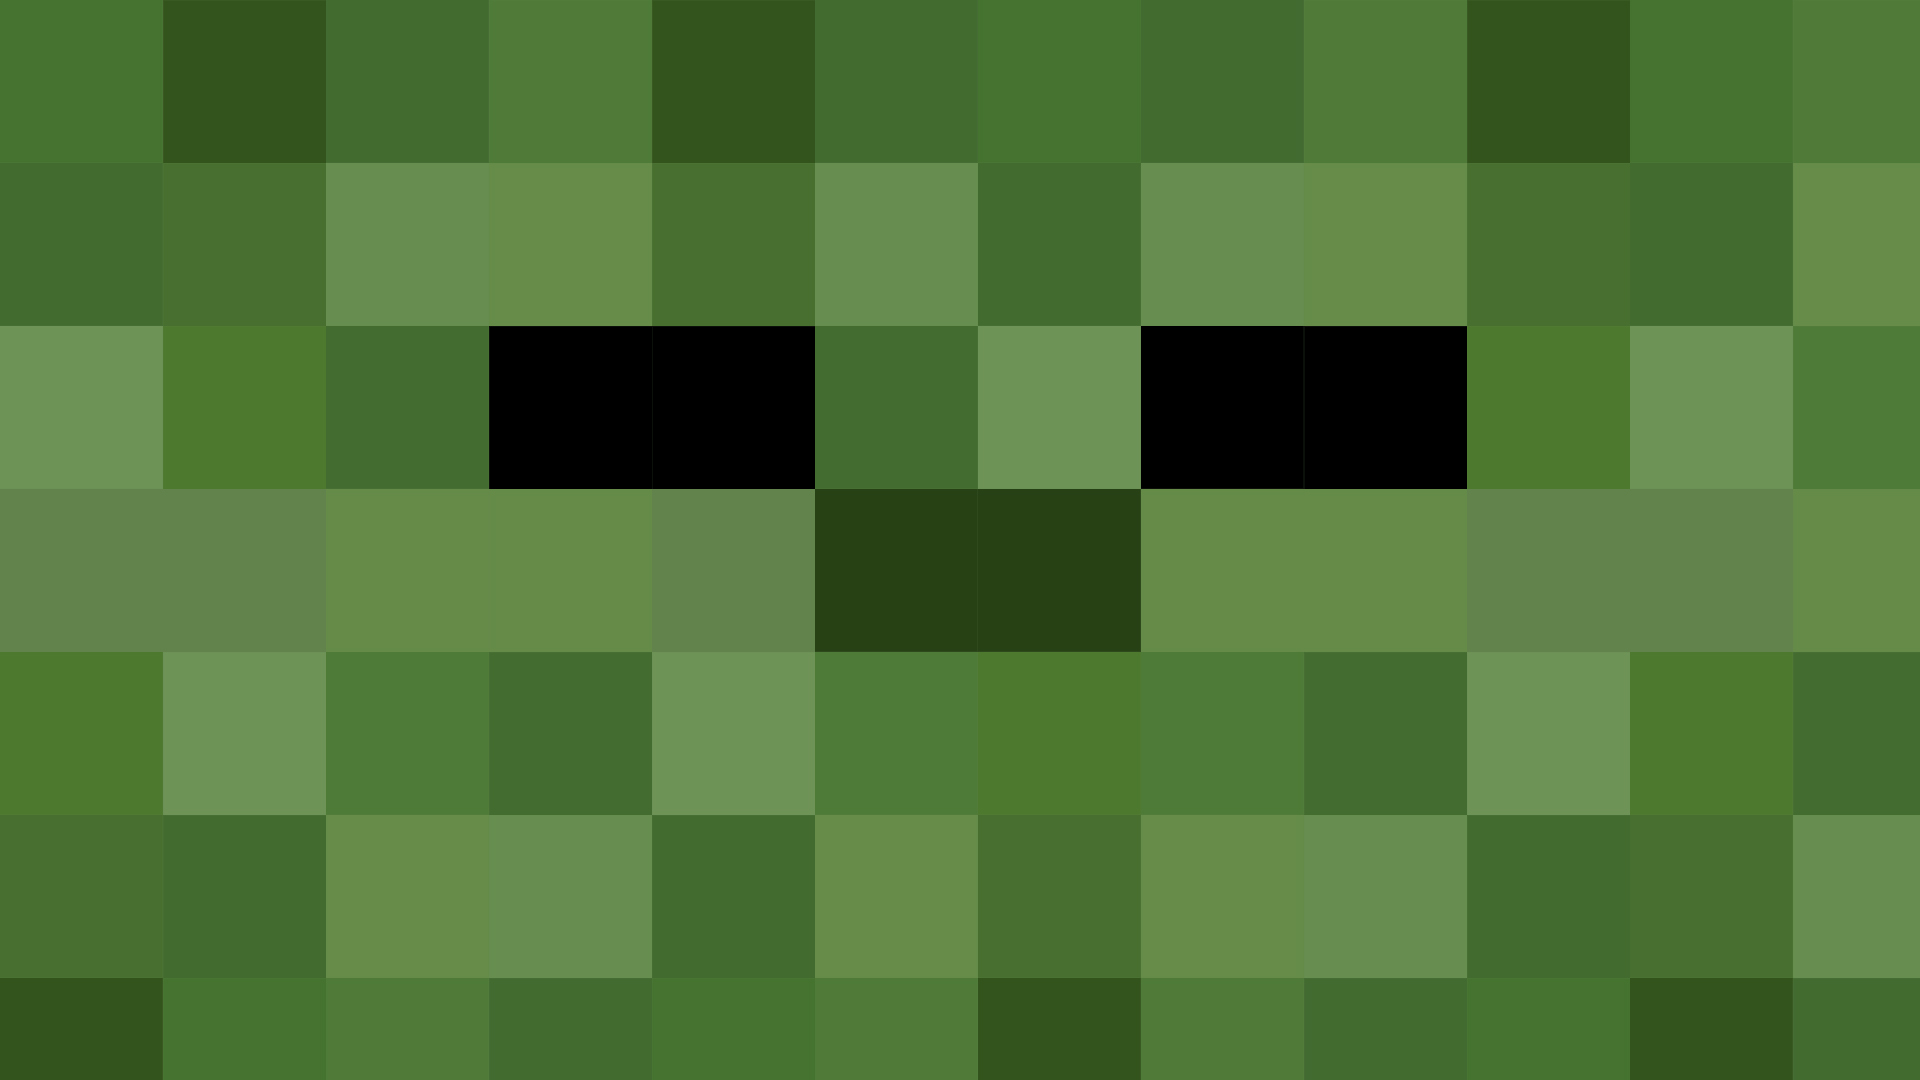 cool wallpapers of minecraft zombies - photo #31